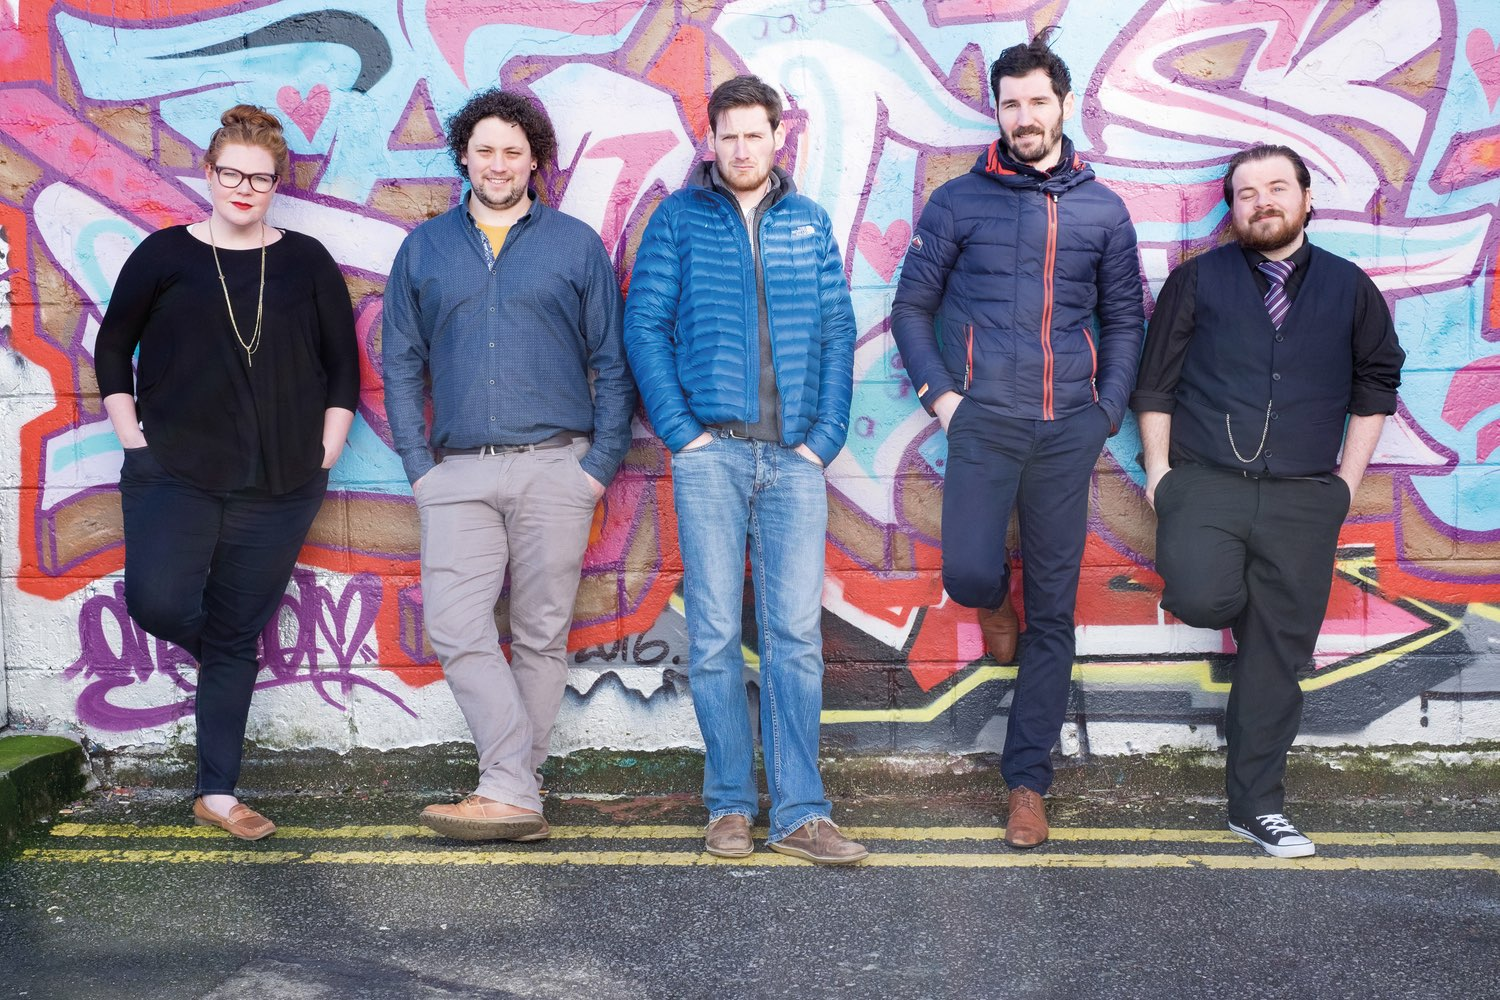 The Nádhúra team is made up of GMIT Letterfrack graduates.  Left to right:  Ainslie Peters, Oisin White, Peter Ranalow, Mark Leonard, and Michael Cooney. Photo by Gerard Conneely